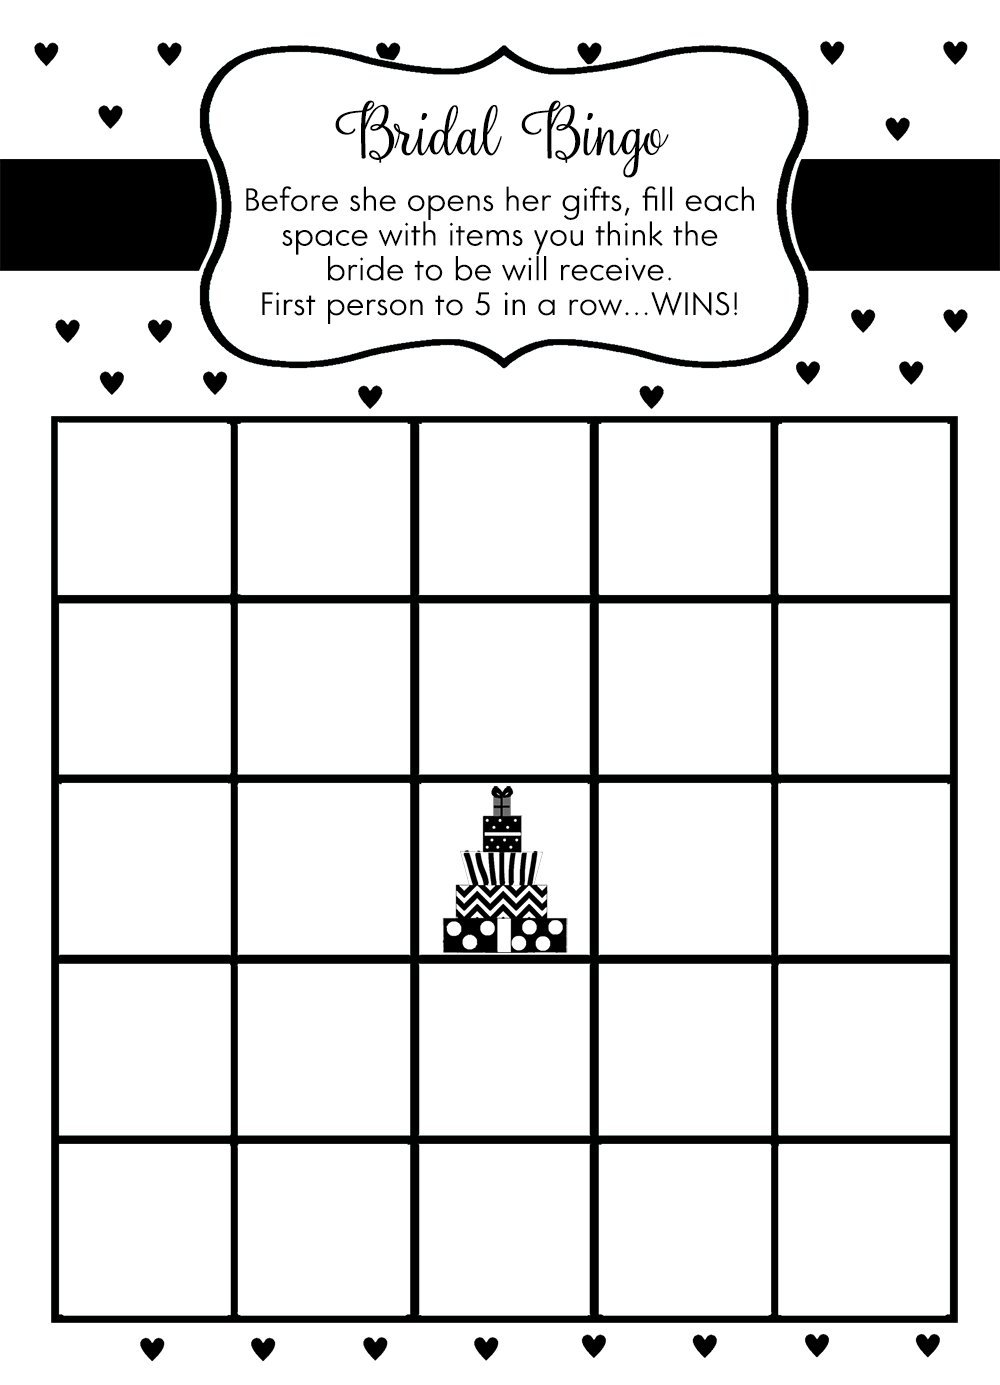 Presents Full of Love, Bingo Games, Black, White, Wedding Shower, Wedding Shower Games, 24 Printed Bingo Game Cards by The Invite Lady